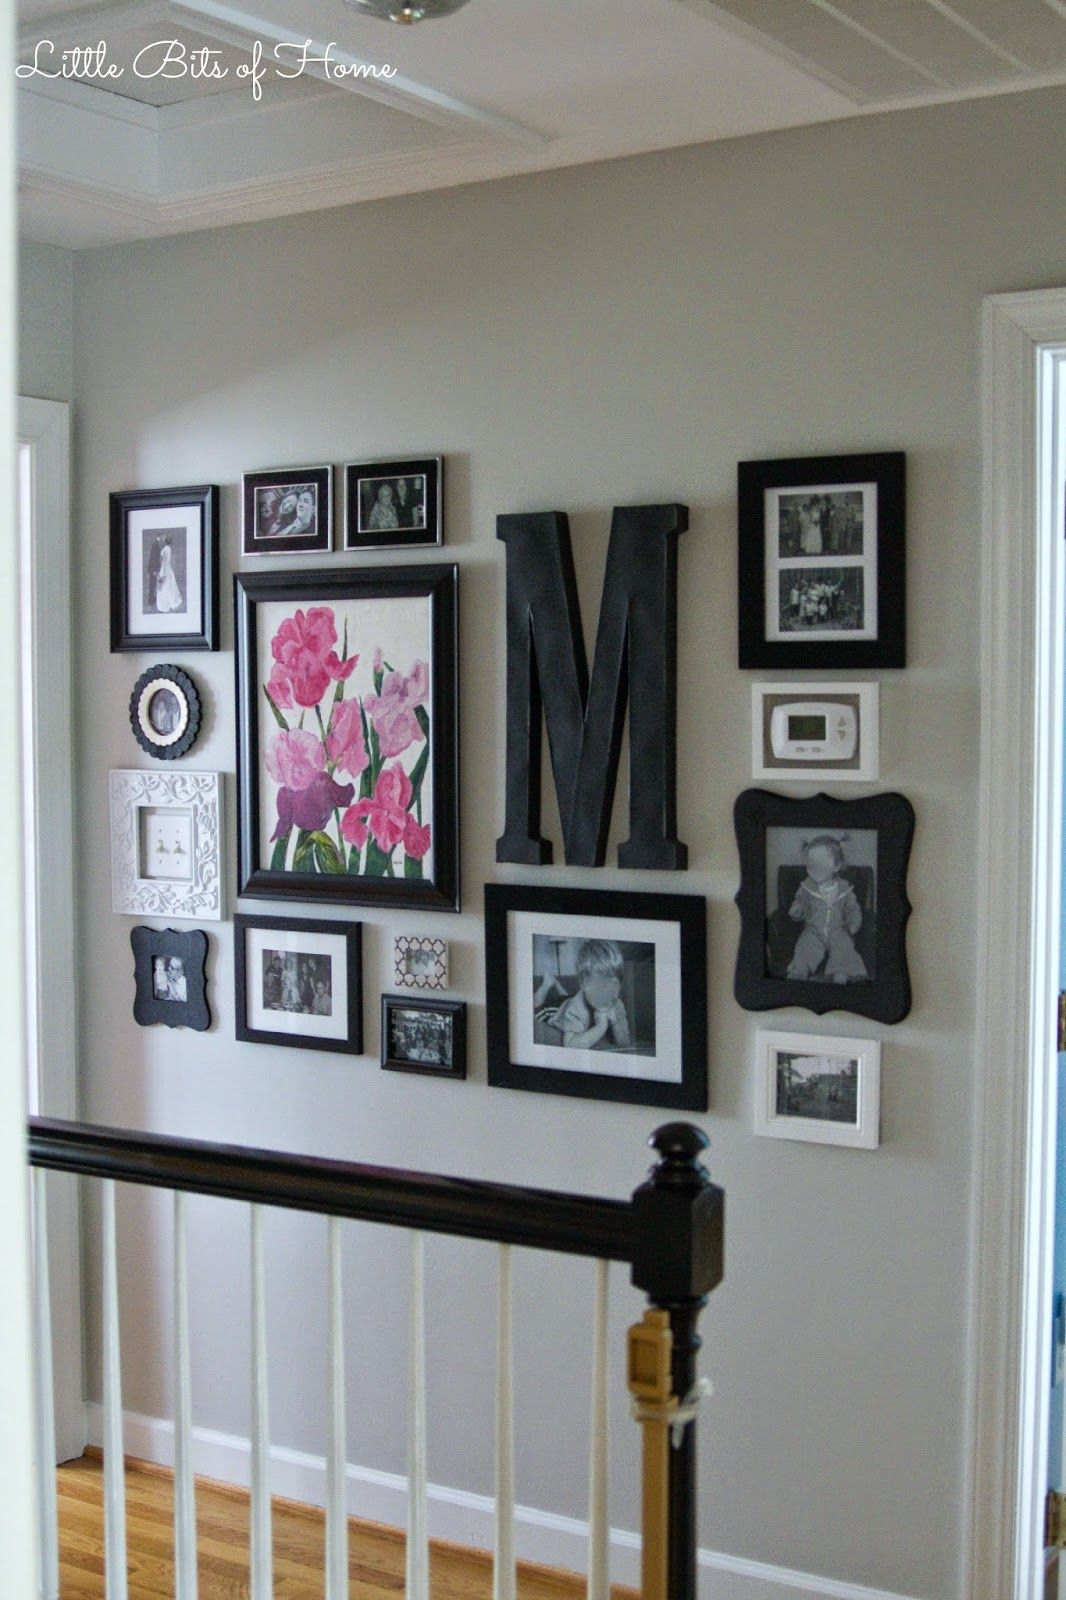 Living Room Decorating Ideas Picture Frames Rustic Decor Little Bits Of Home Hallway Gallery Wall Walls For